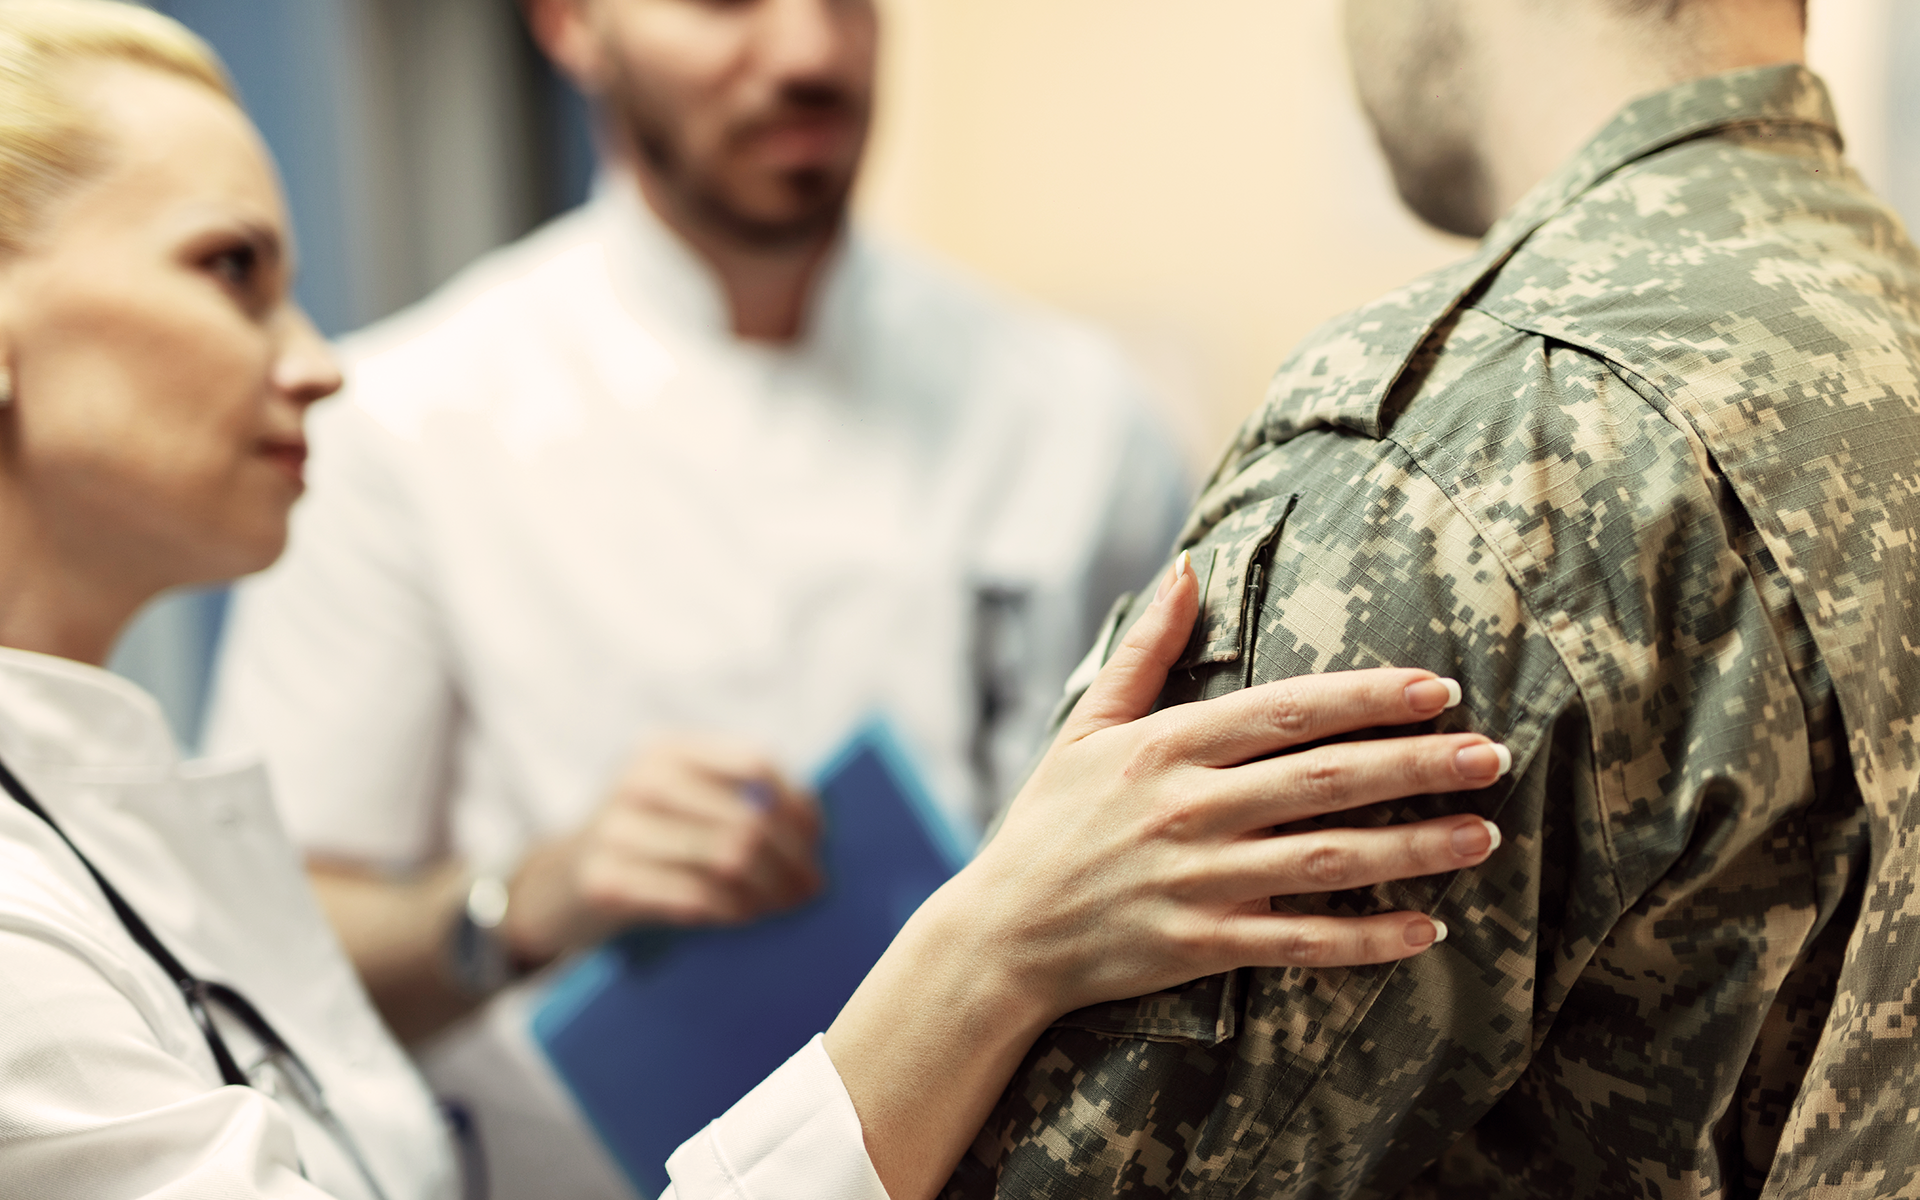 Doctor consoles veteran while they talk to another doctor.